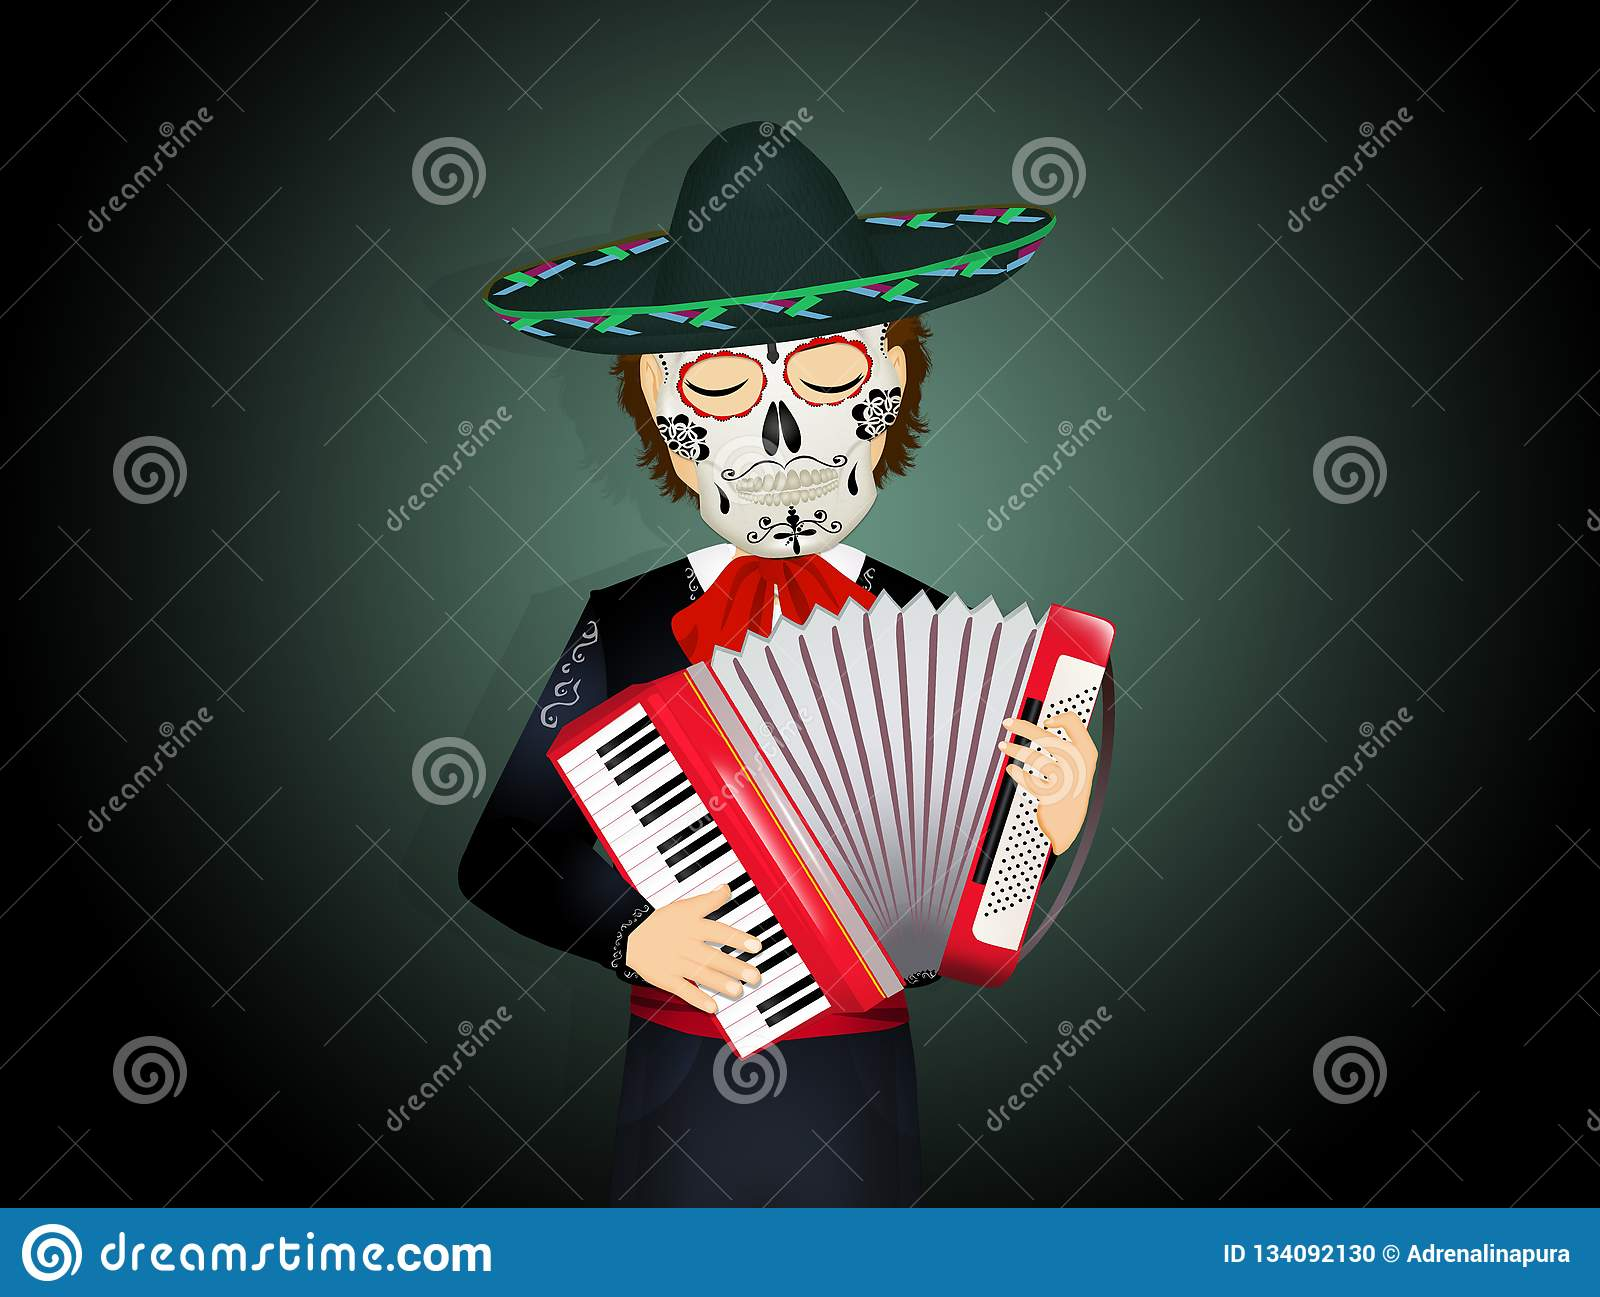 Mariachi with mask of the skull on the day of death